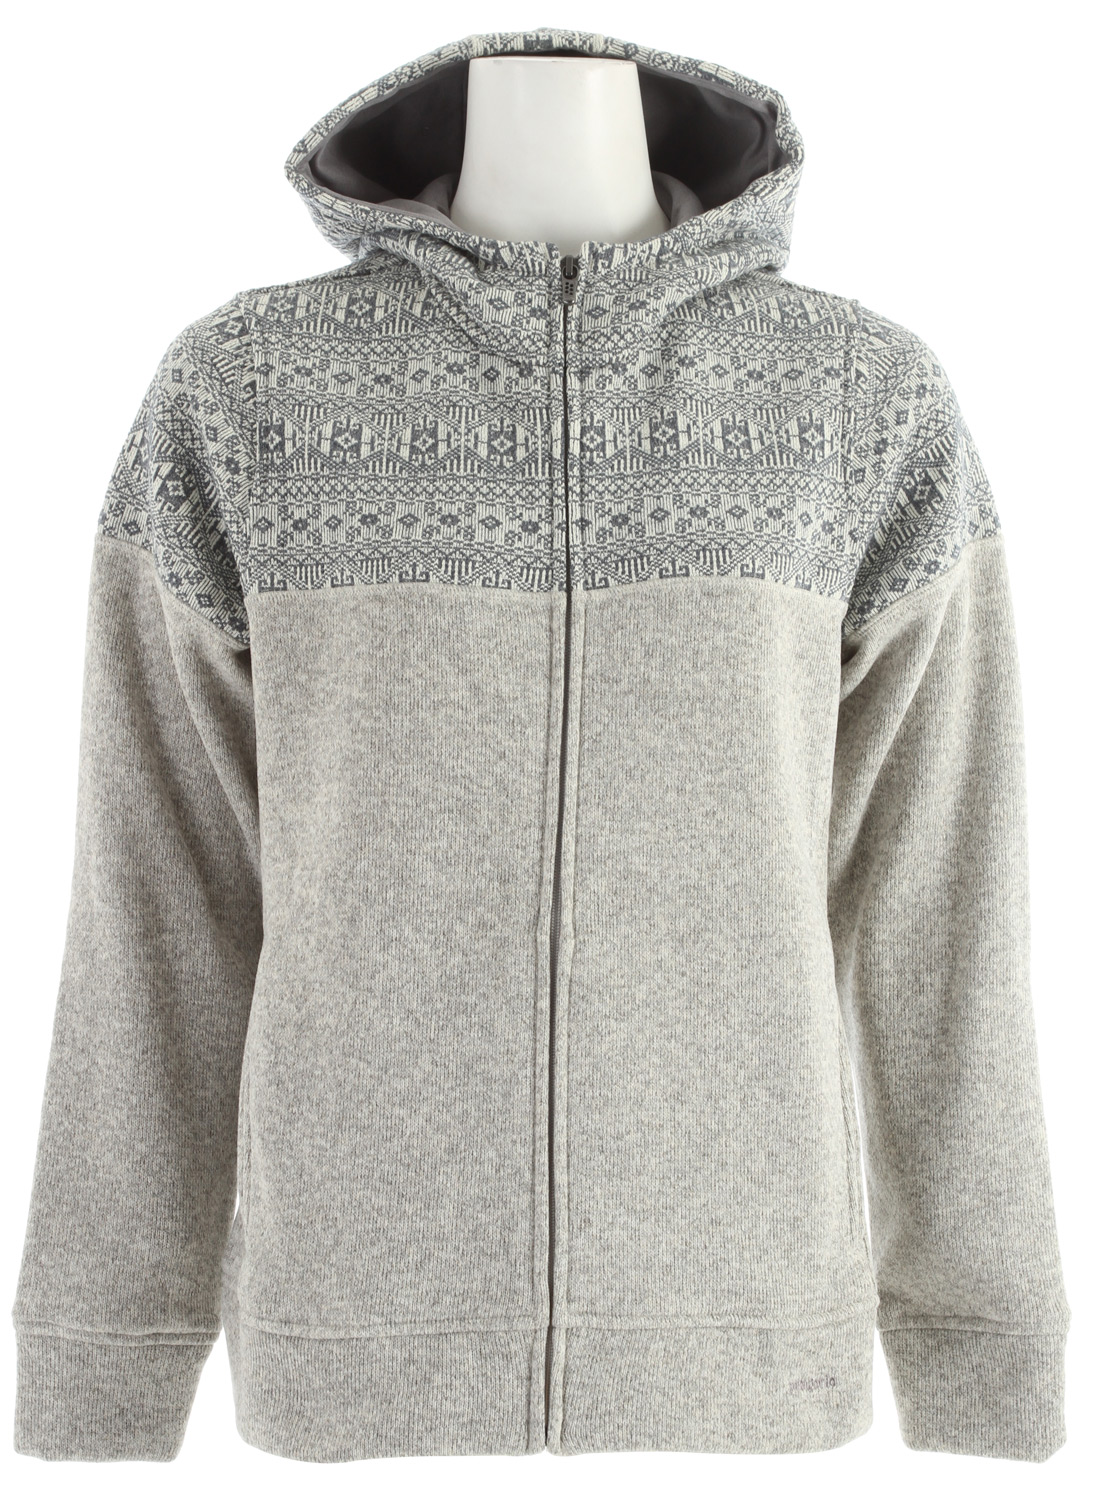 Icelandic design elements rendered in our popular Better Sweater polyester fleece: This cozy fleece hoody has a patterned hood and yoke, a 3-panel hood, full-length zipper and handwarmer pockets. This garment has a Slim Fit Bundle up and enjoy sublime views from the deck of the Faroe Island Ferry. This stylish hoody, cut in a modern silhouette, with side panels with forward seams, has an Icelandic-inspired pattern on its yoke and its 3-panel hood, which is lined with brushed polyester jersey. It's hip length, with handwarmer pockets, styling details at cuffs and waistband, and a full-length zip complete with garage and internal wind flap.Key Features of the Patagonia Better Sweater Icelandic Hoody: 3-panel hood lined with brushed polyester jersey Full-length zipper has an internal wind flap and zipper garage Side panels with forward seams provide a nice fit throughout the body Styling details at cuffs and waistband Handwarmer pockets Hip length Body: 9.5-oz 100% polyester with a sweater-knit exterior and fleece interior. Contrast: 13.5-oz 100% polyester sweater-knit fleece 646 g (22.8 oz) Made in Thailand. - $121.95